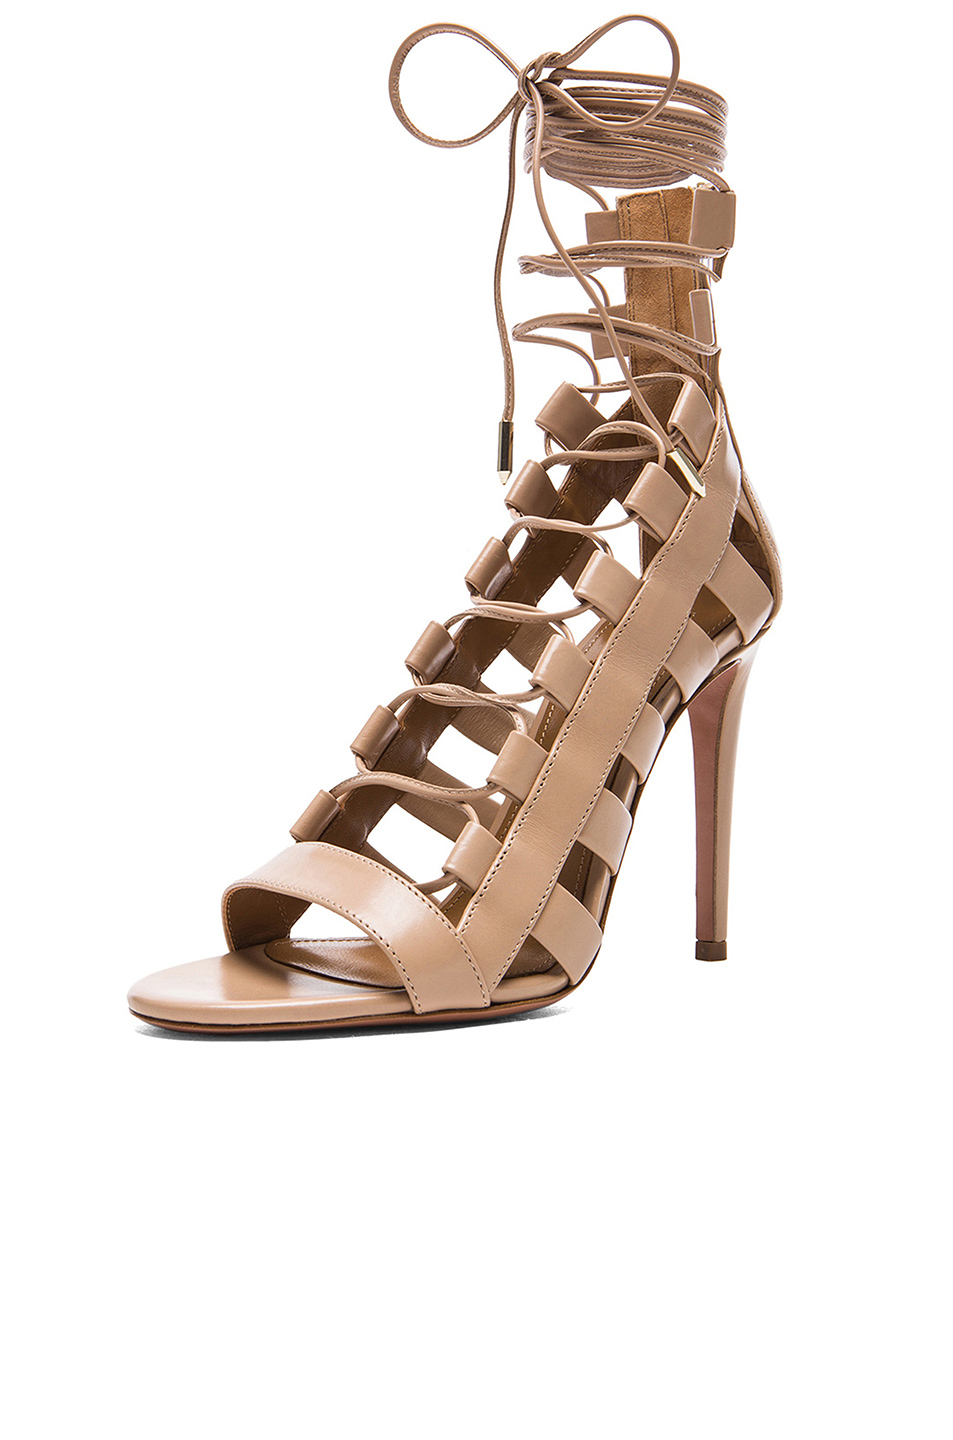 b6419484480af Aquazzura Amazon Leather Heels in Nude